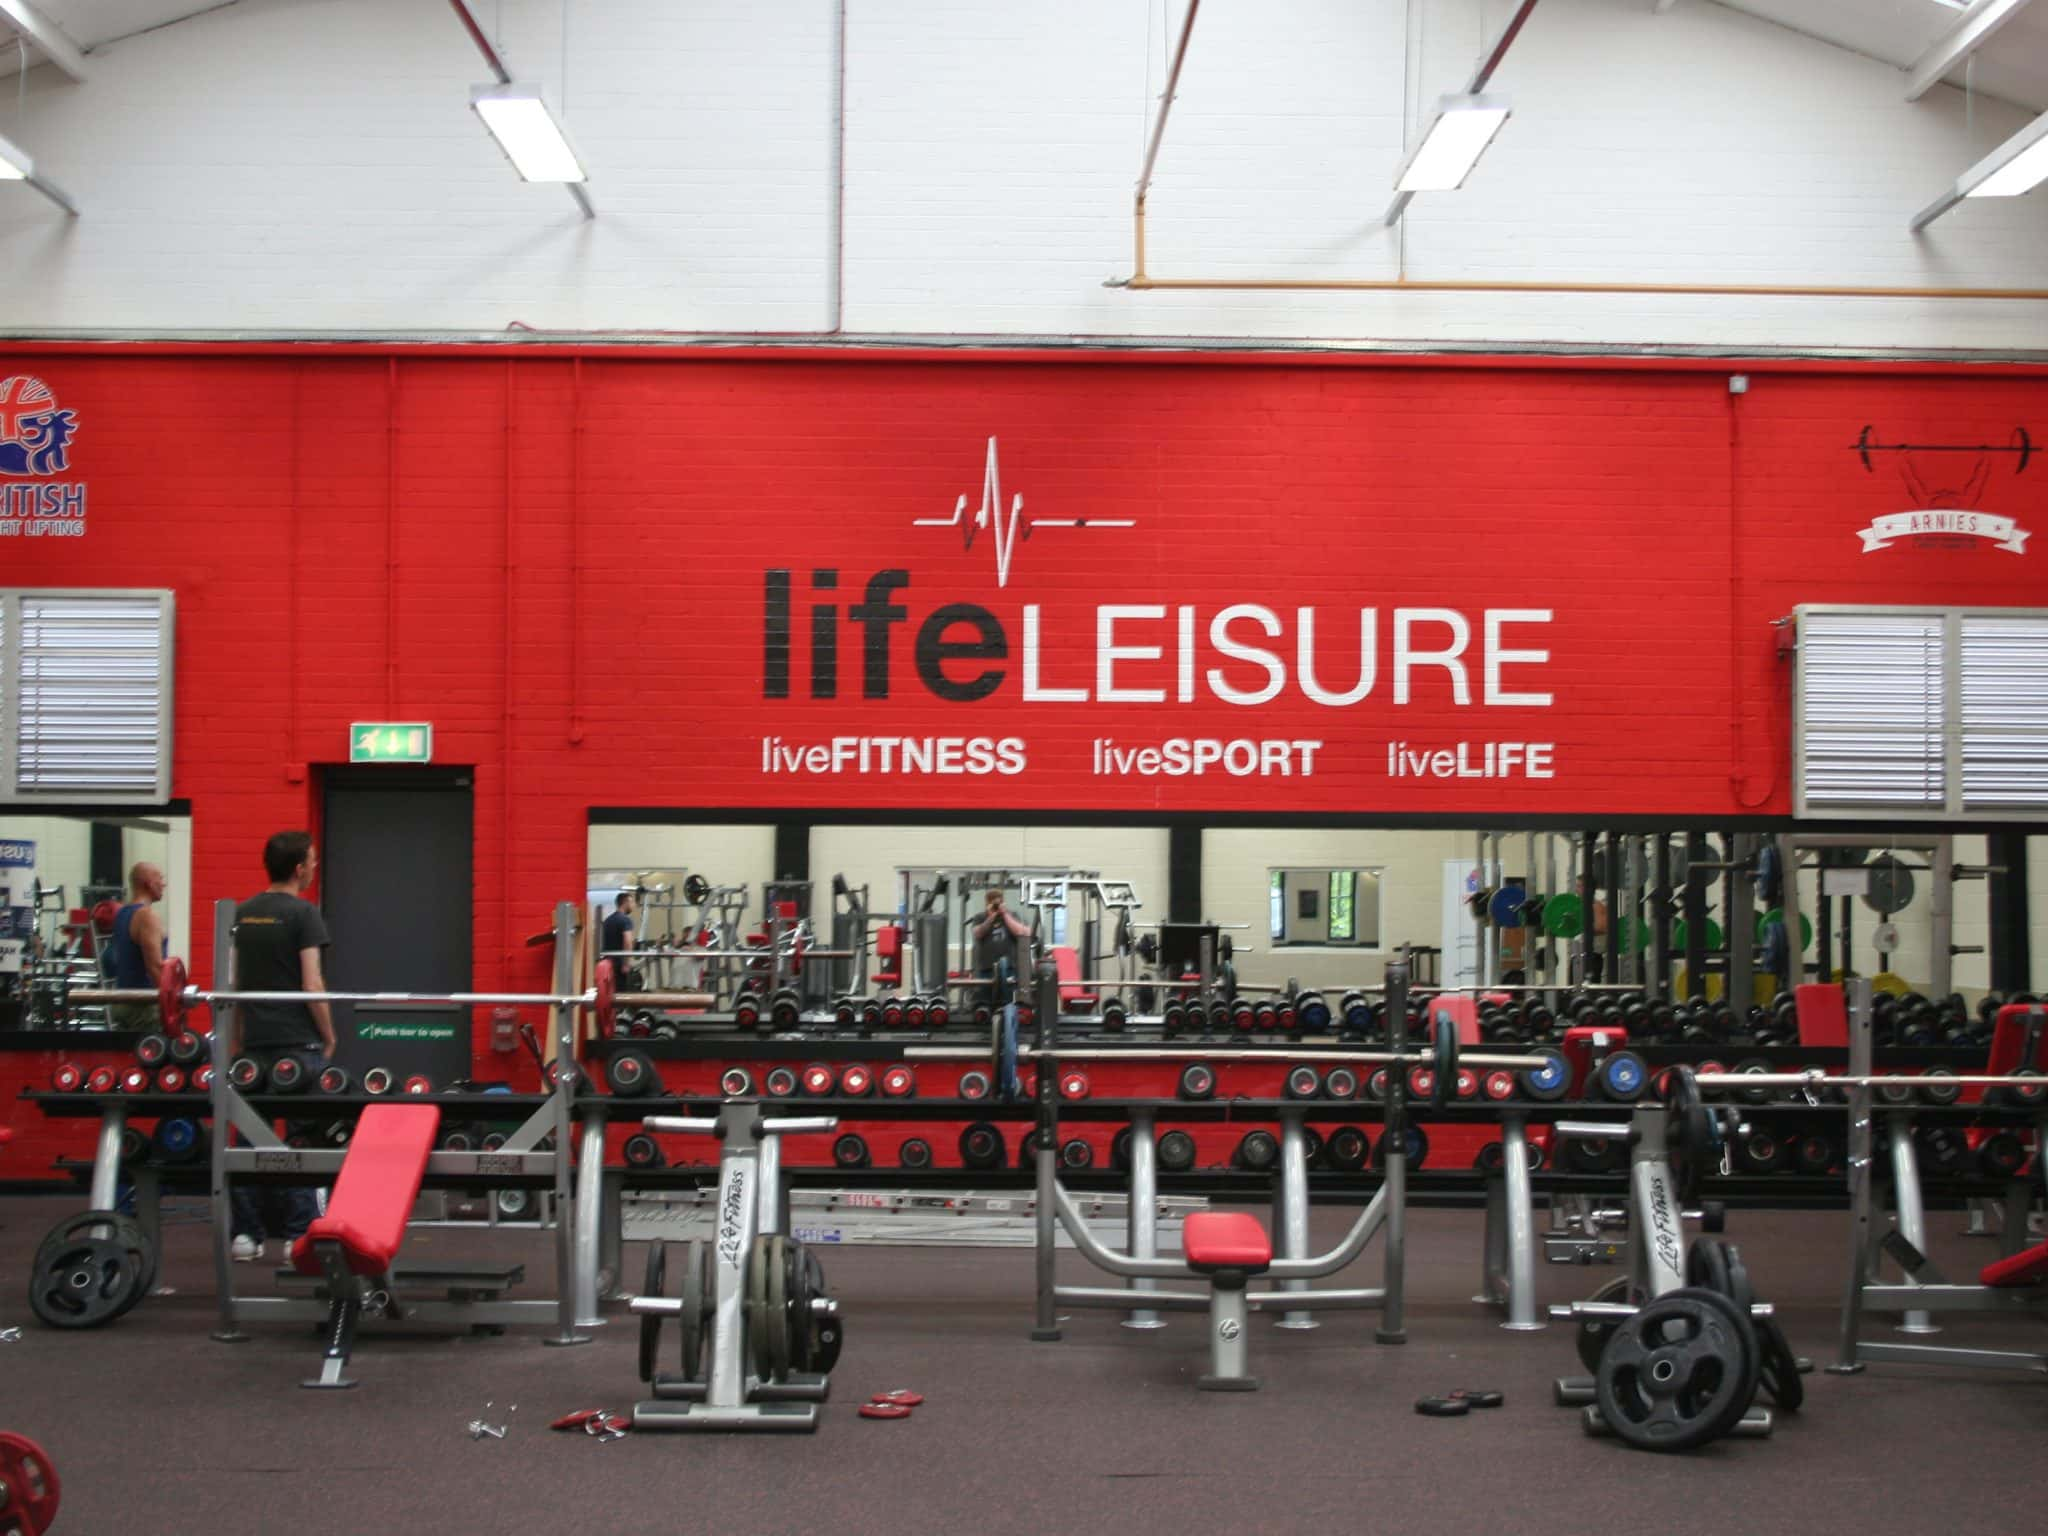 Life Leisure Wall Decals